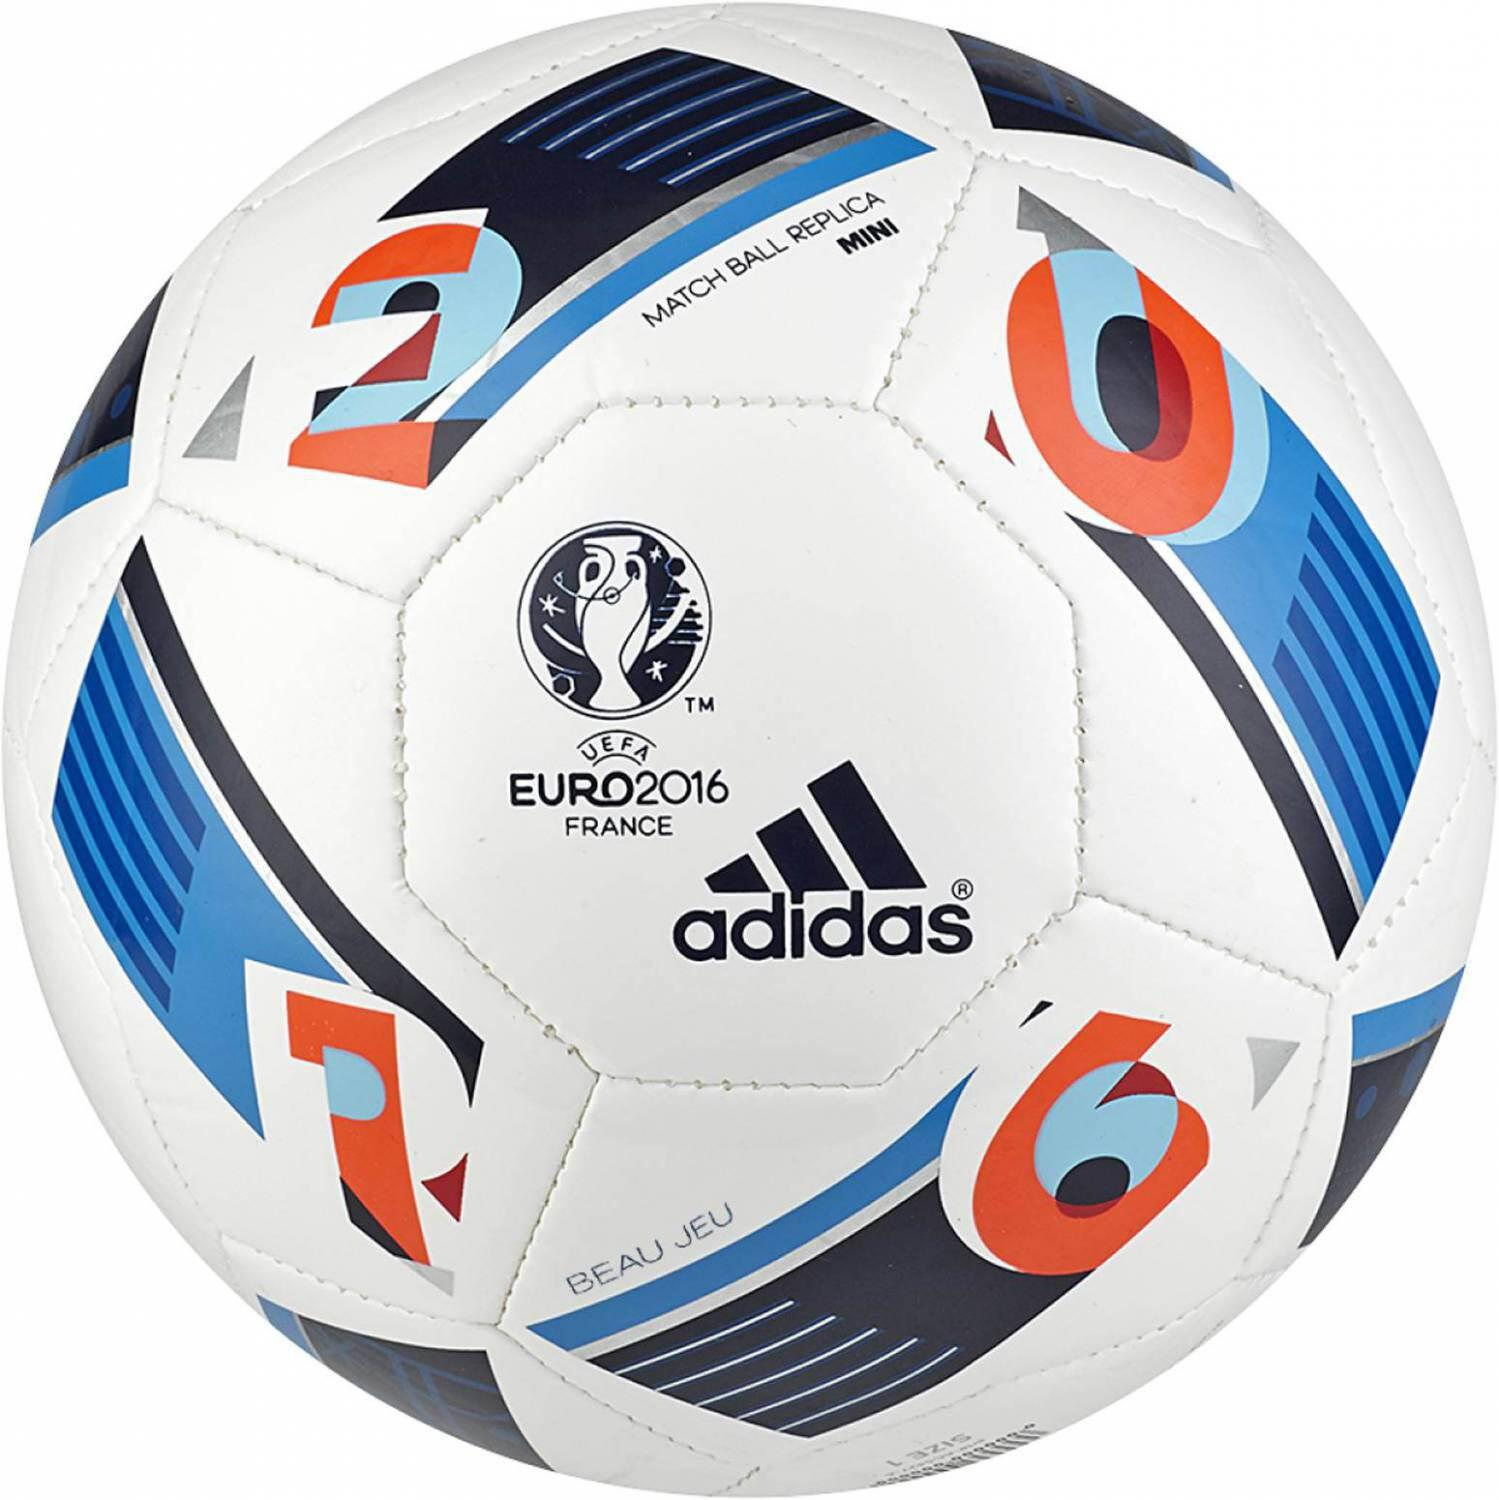 adidas-euro-2016-minifussball-gr-ouml-szlig-e-1-white-bright-blue-night-indigo-